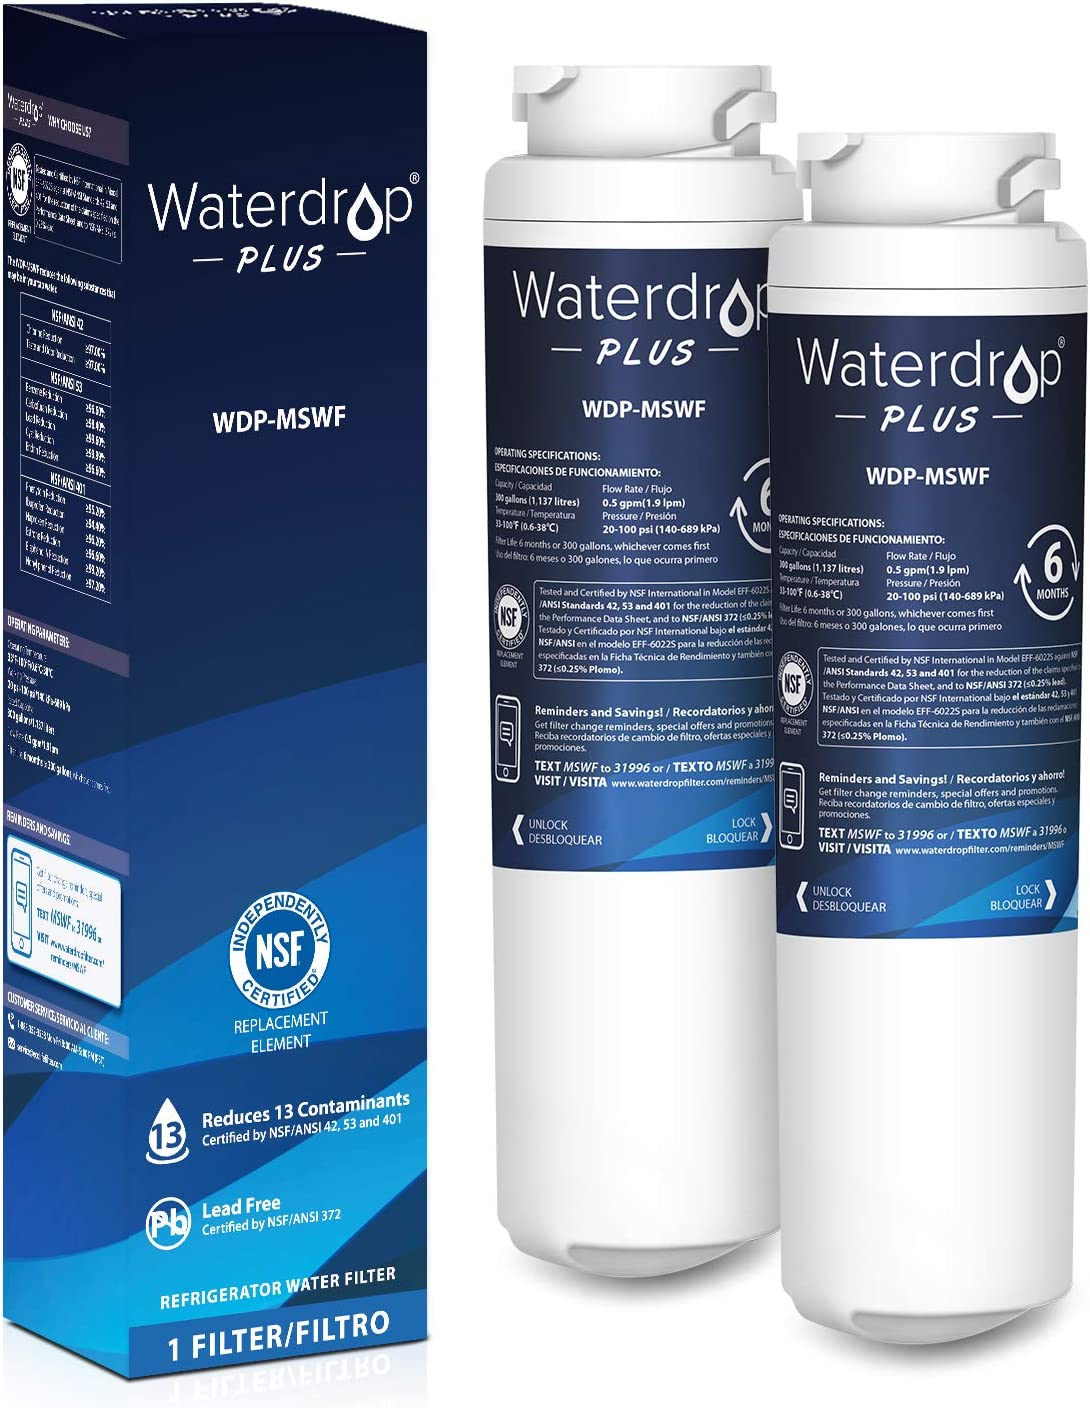 Waterdrop Plus Refrigerator Water Filter, Compatible with GE MSWF, 101820A, 101821B, 101821-B, Reduces Lead, Chlorine, Cyst, Benzene and More, NSF 401&53&42 Certified, Pack of 2